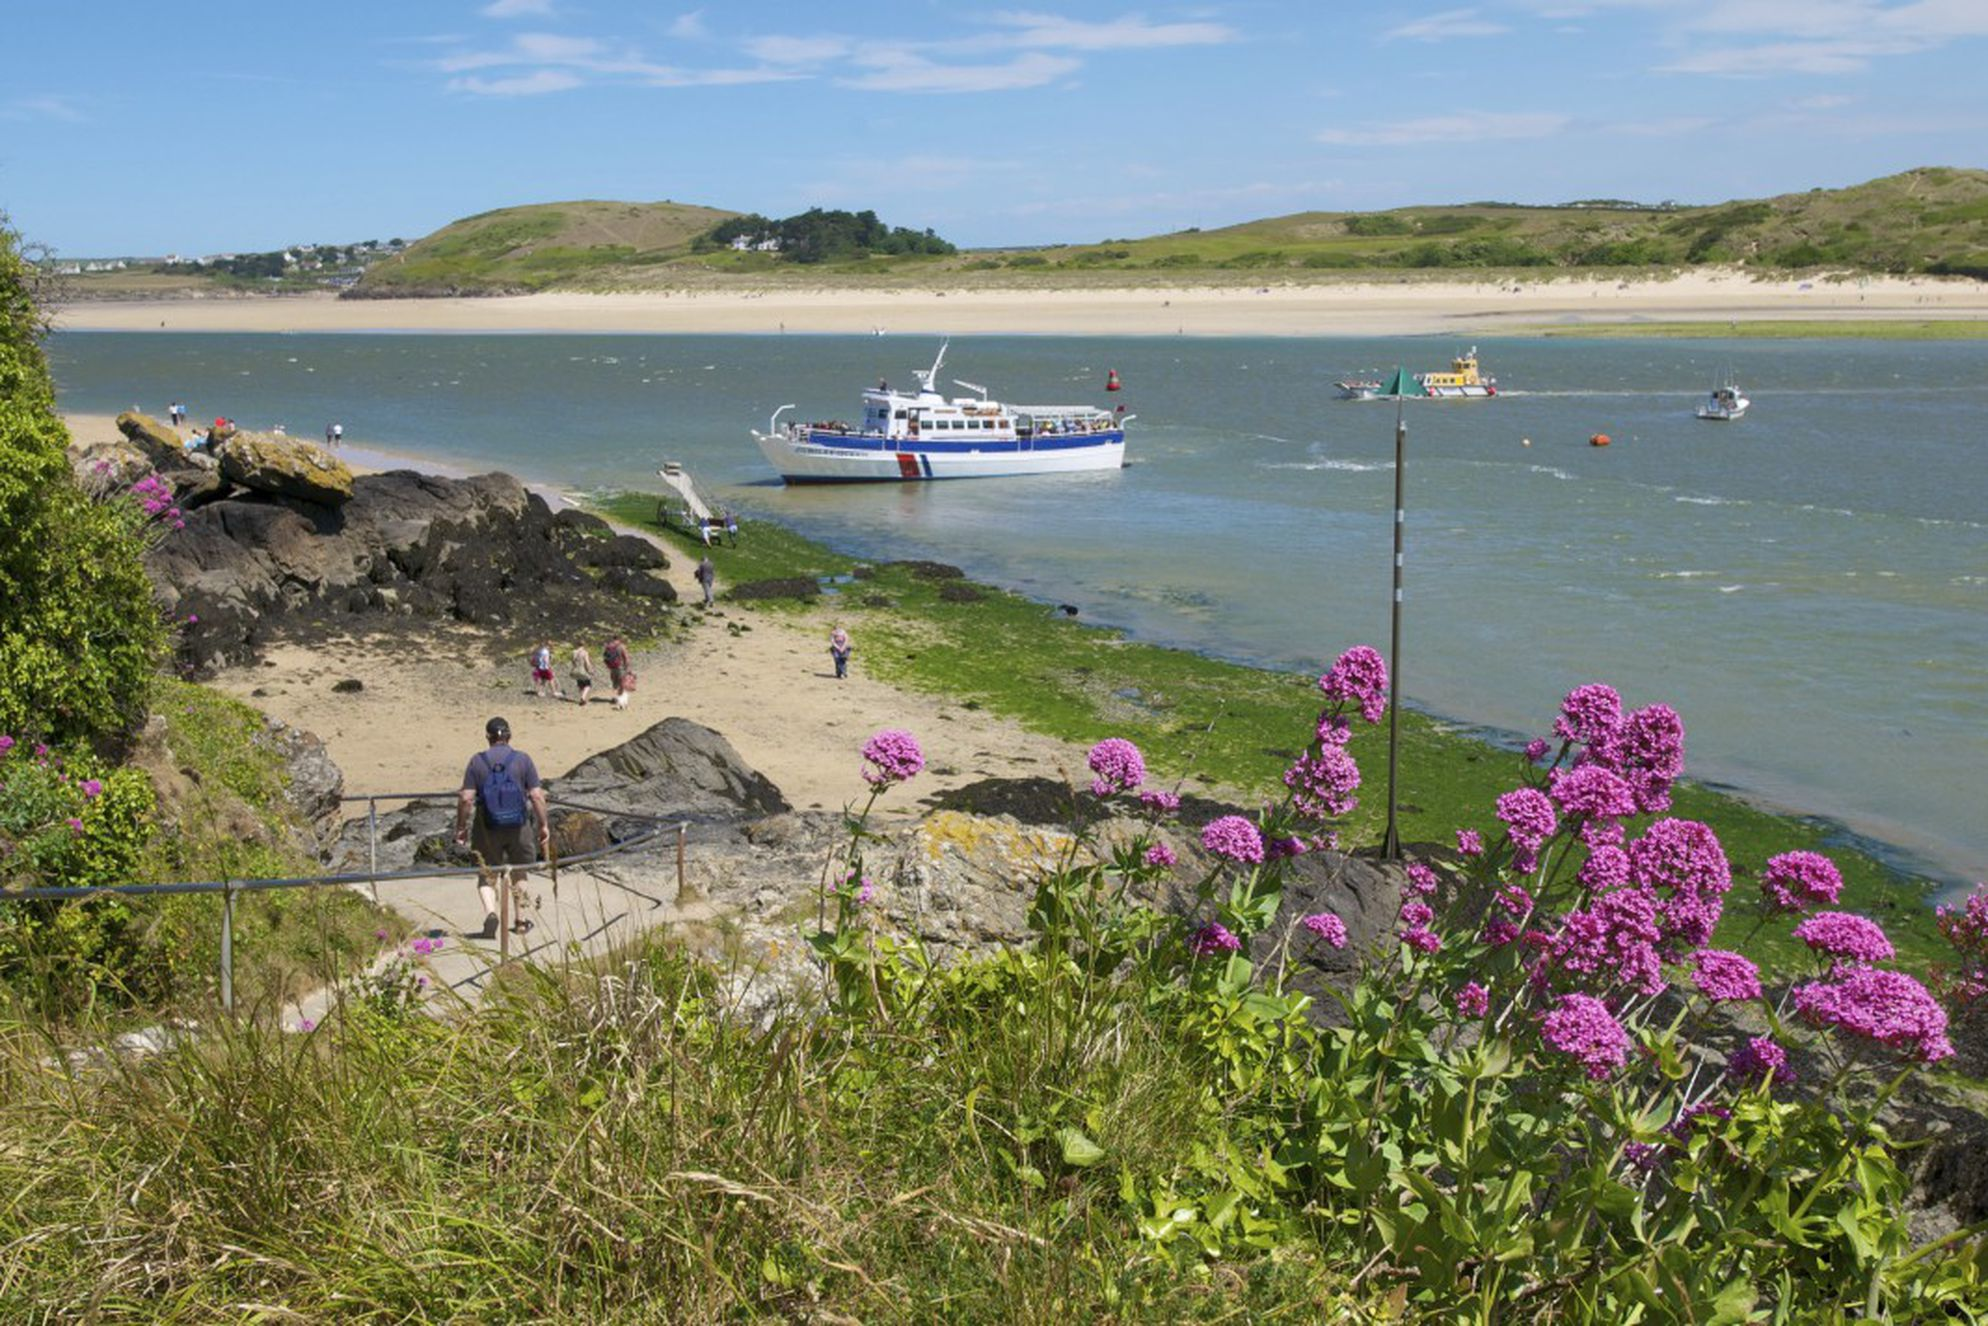 Jubilee Queen and the Padstow to Rock ferry in the Camel Estuary